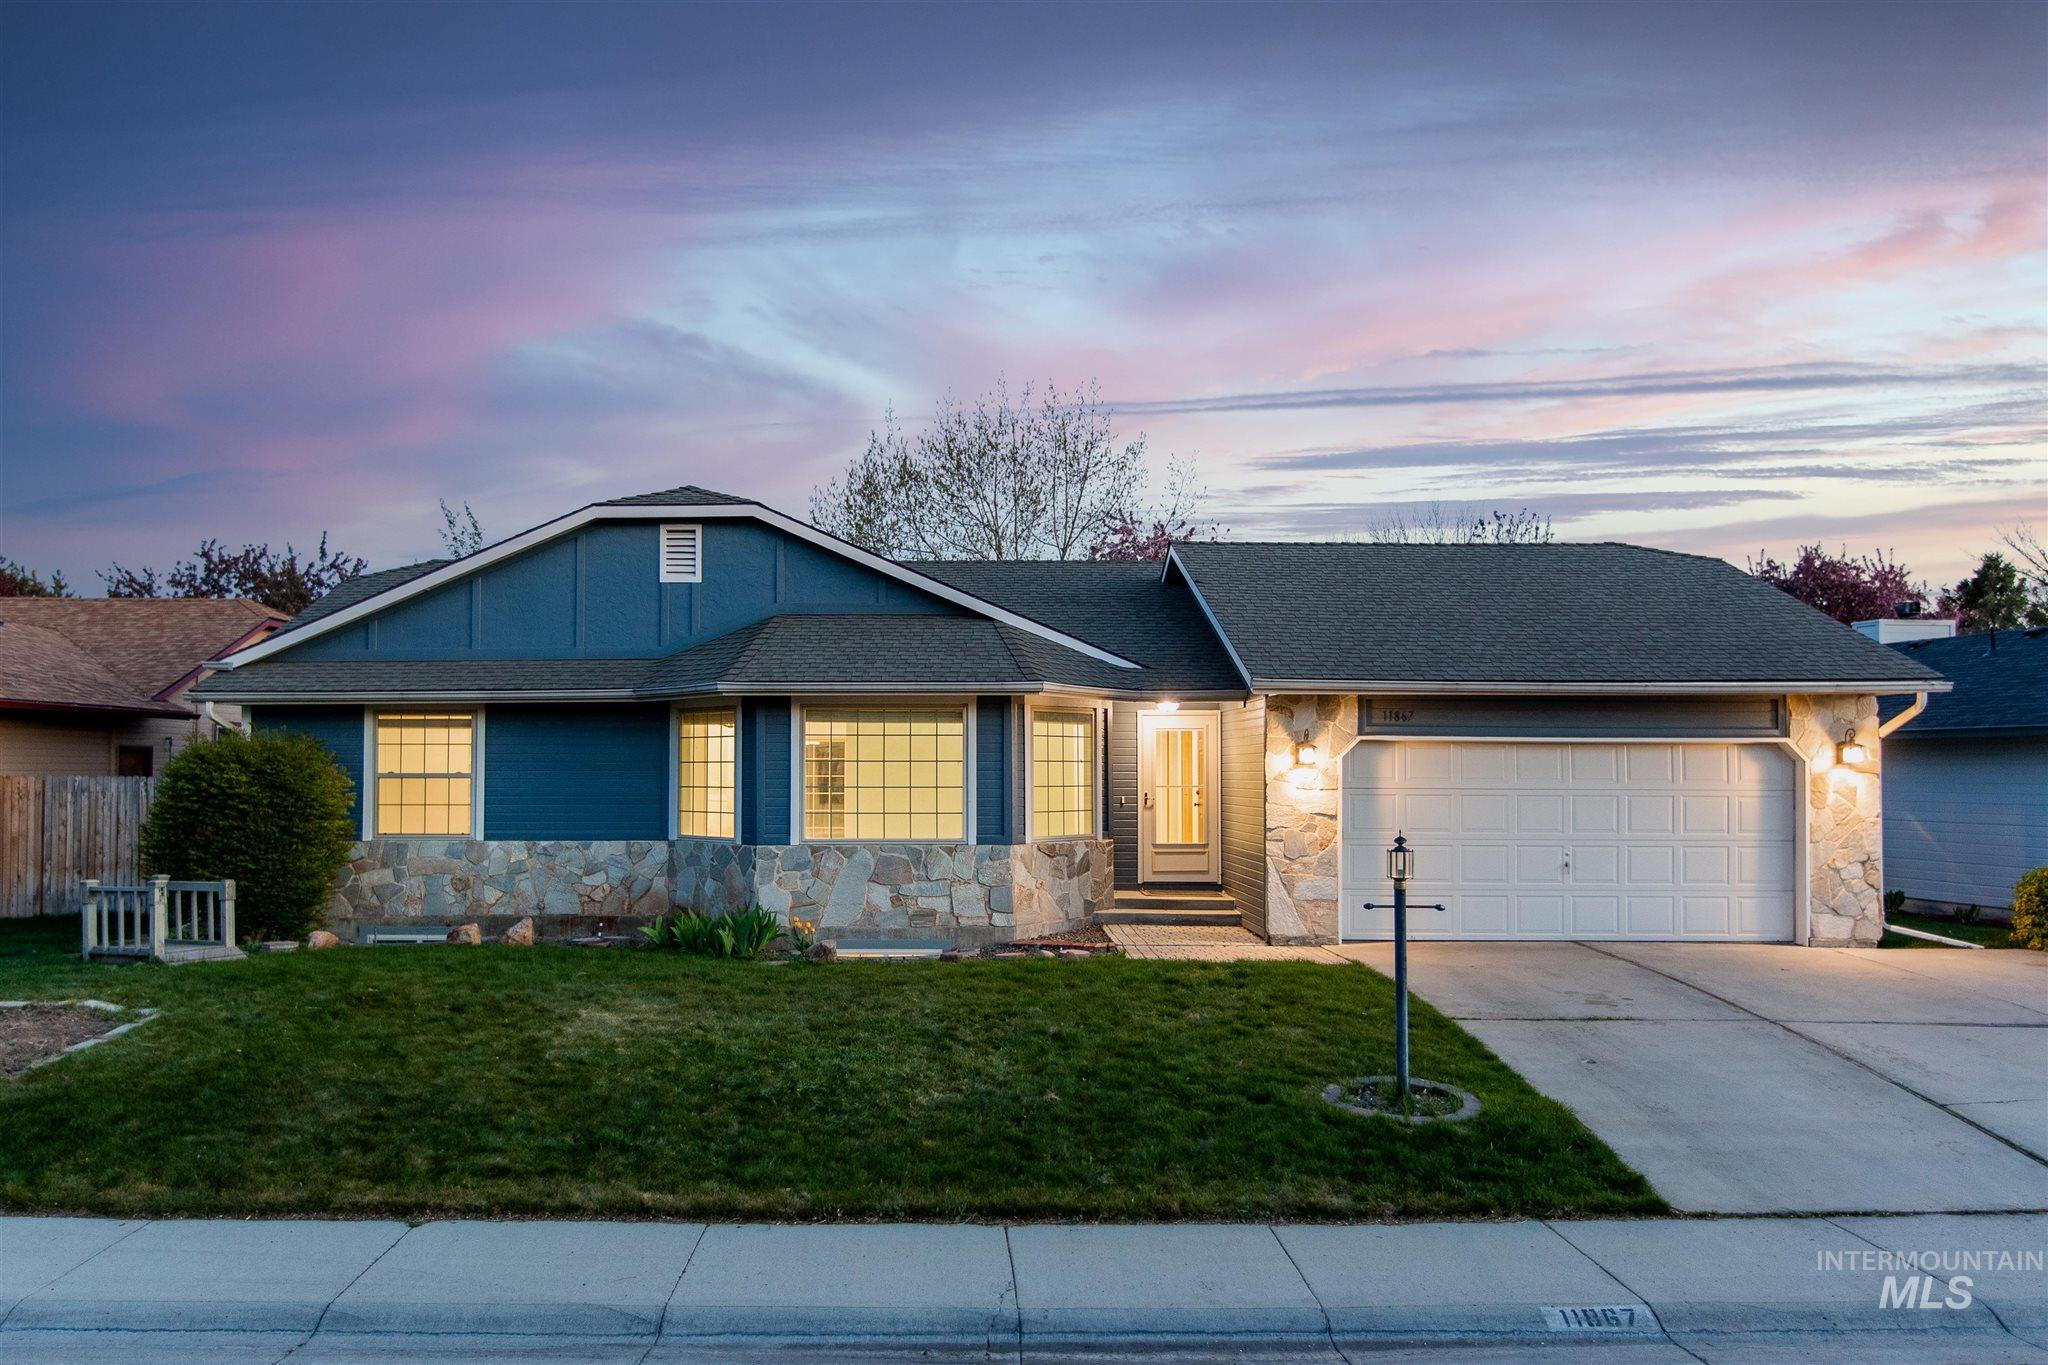 11867 W Flintlock Dr Property Photo - Boise, ID real estate listing